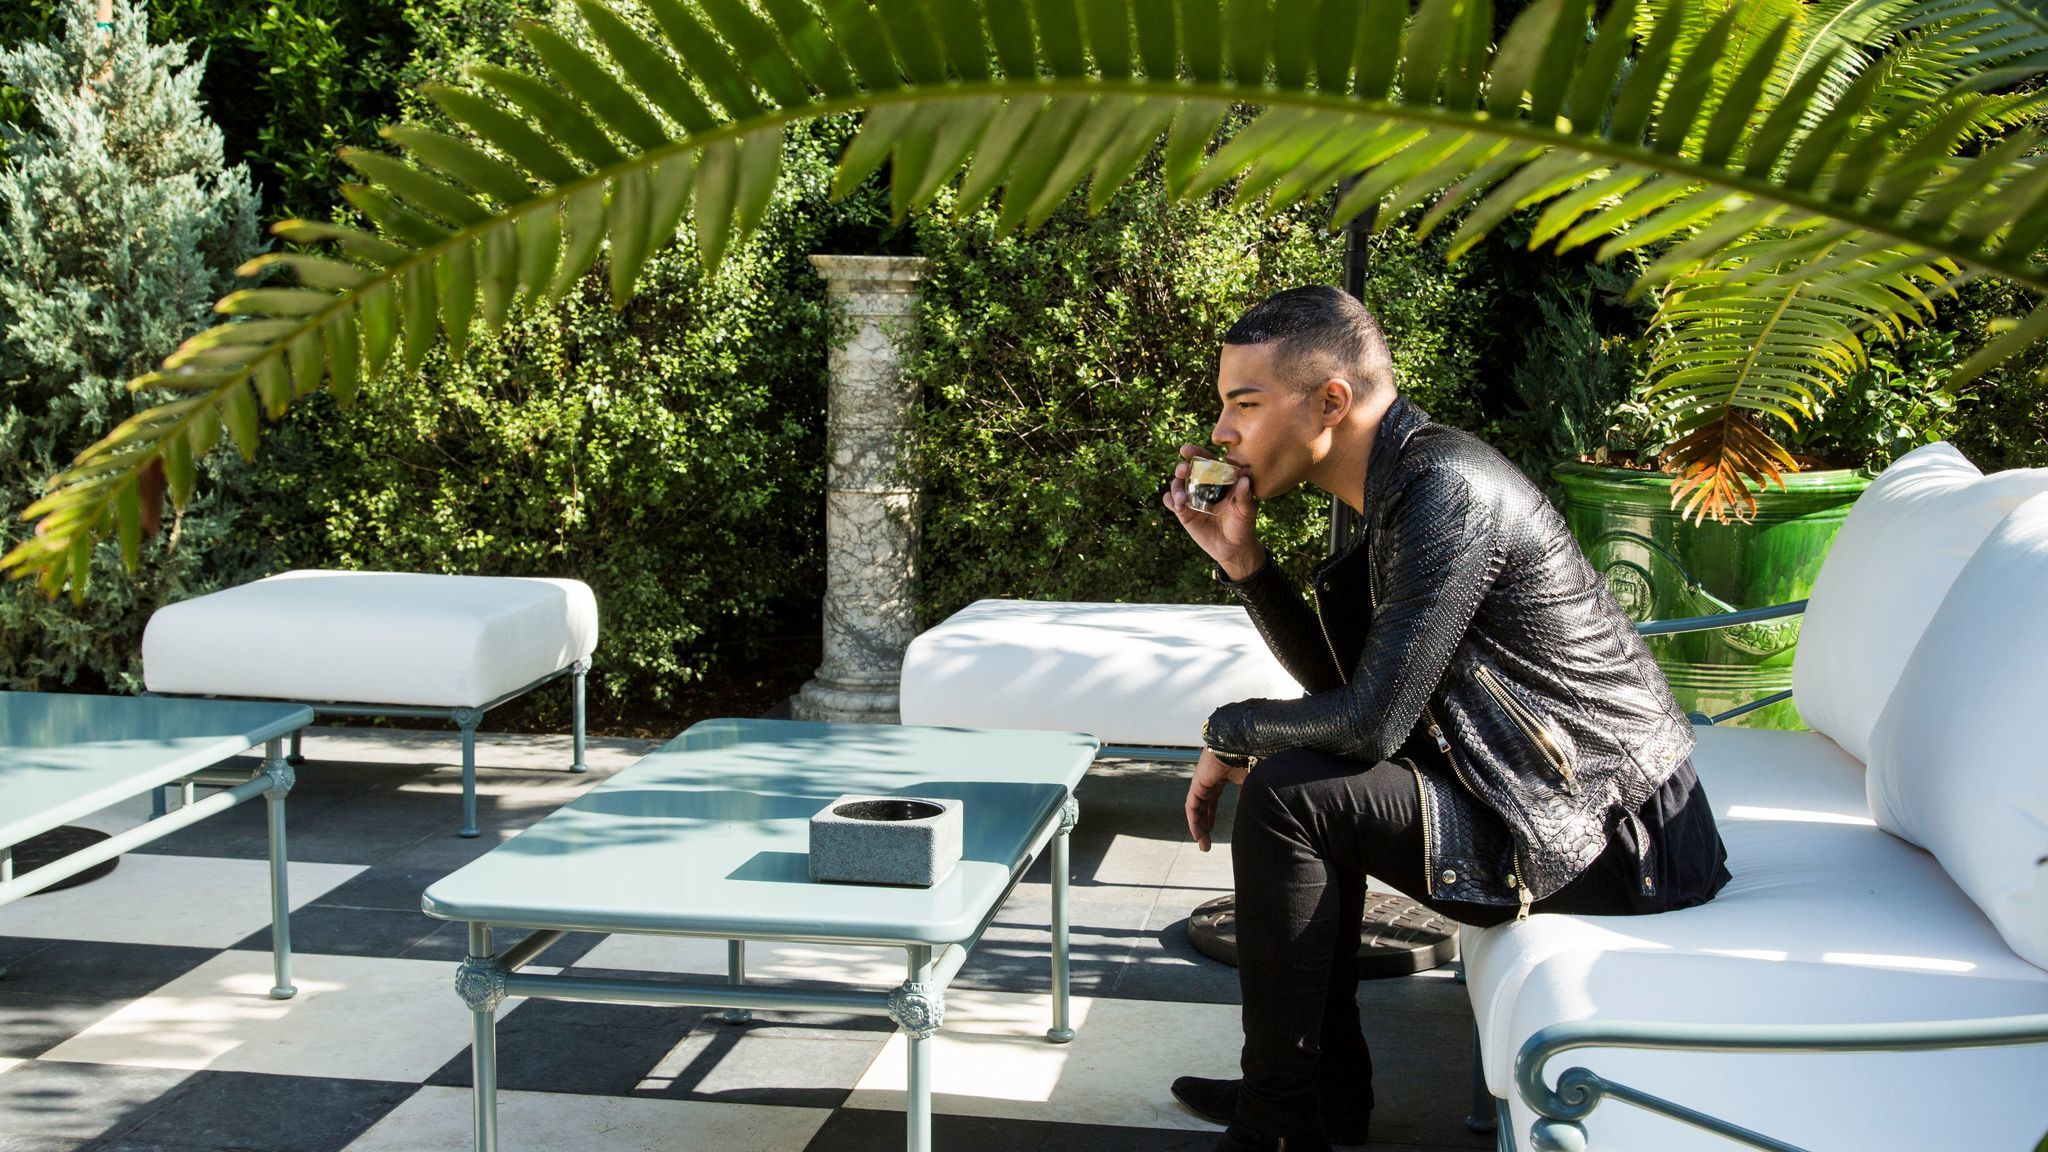 Rousteing taking a break in the outside garden at Balmain's new flagship store in Los Angeles.